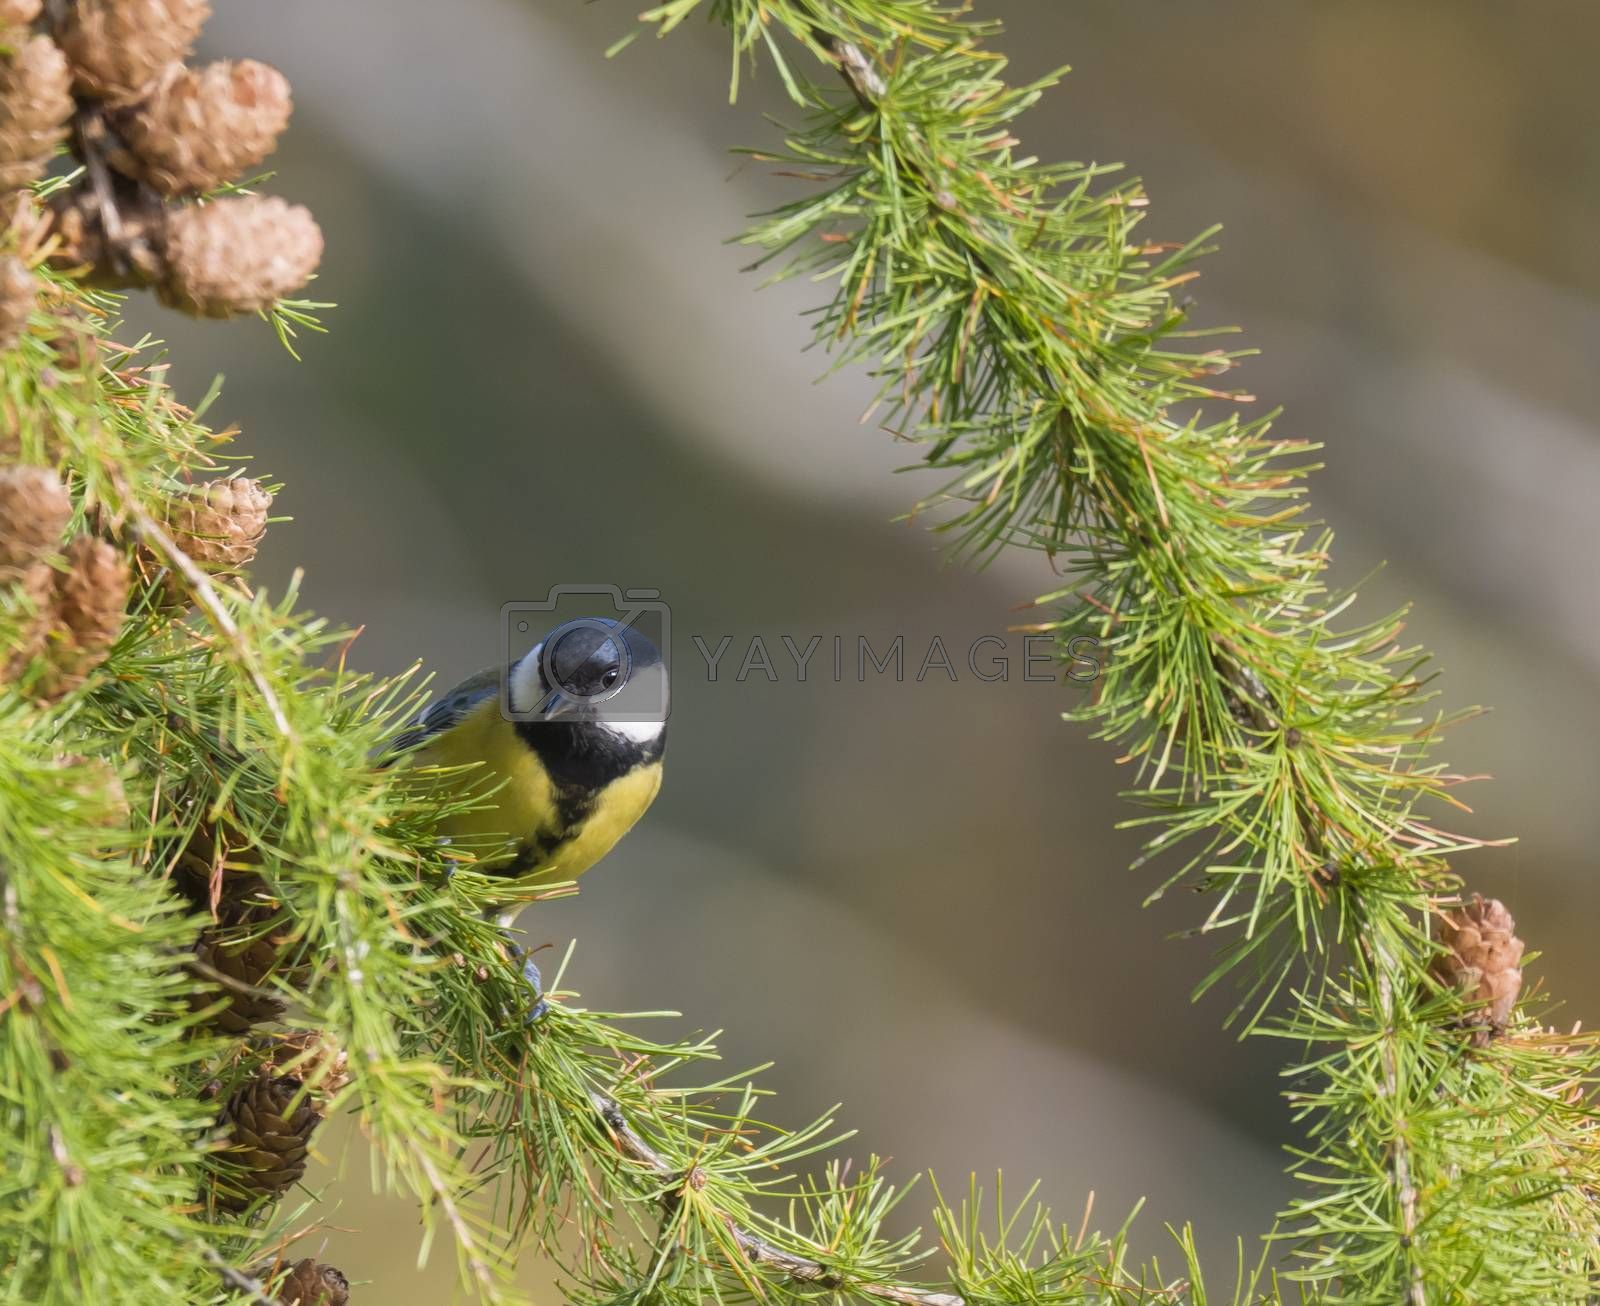 Close up Great tit, Parus major bird perched on lush geen larch tree branch, bokeh background, copy space